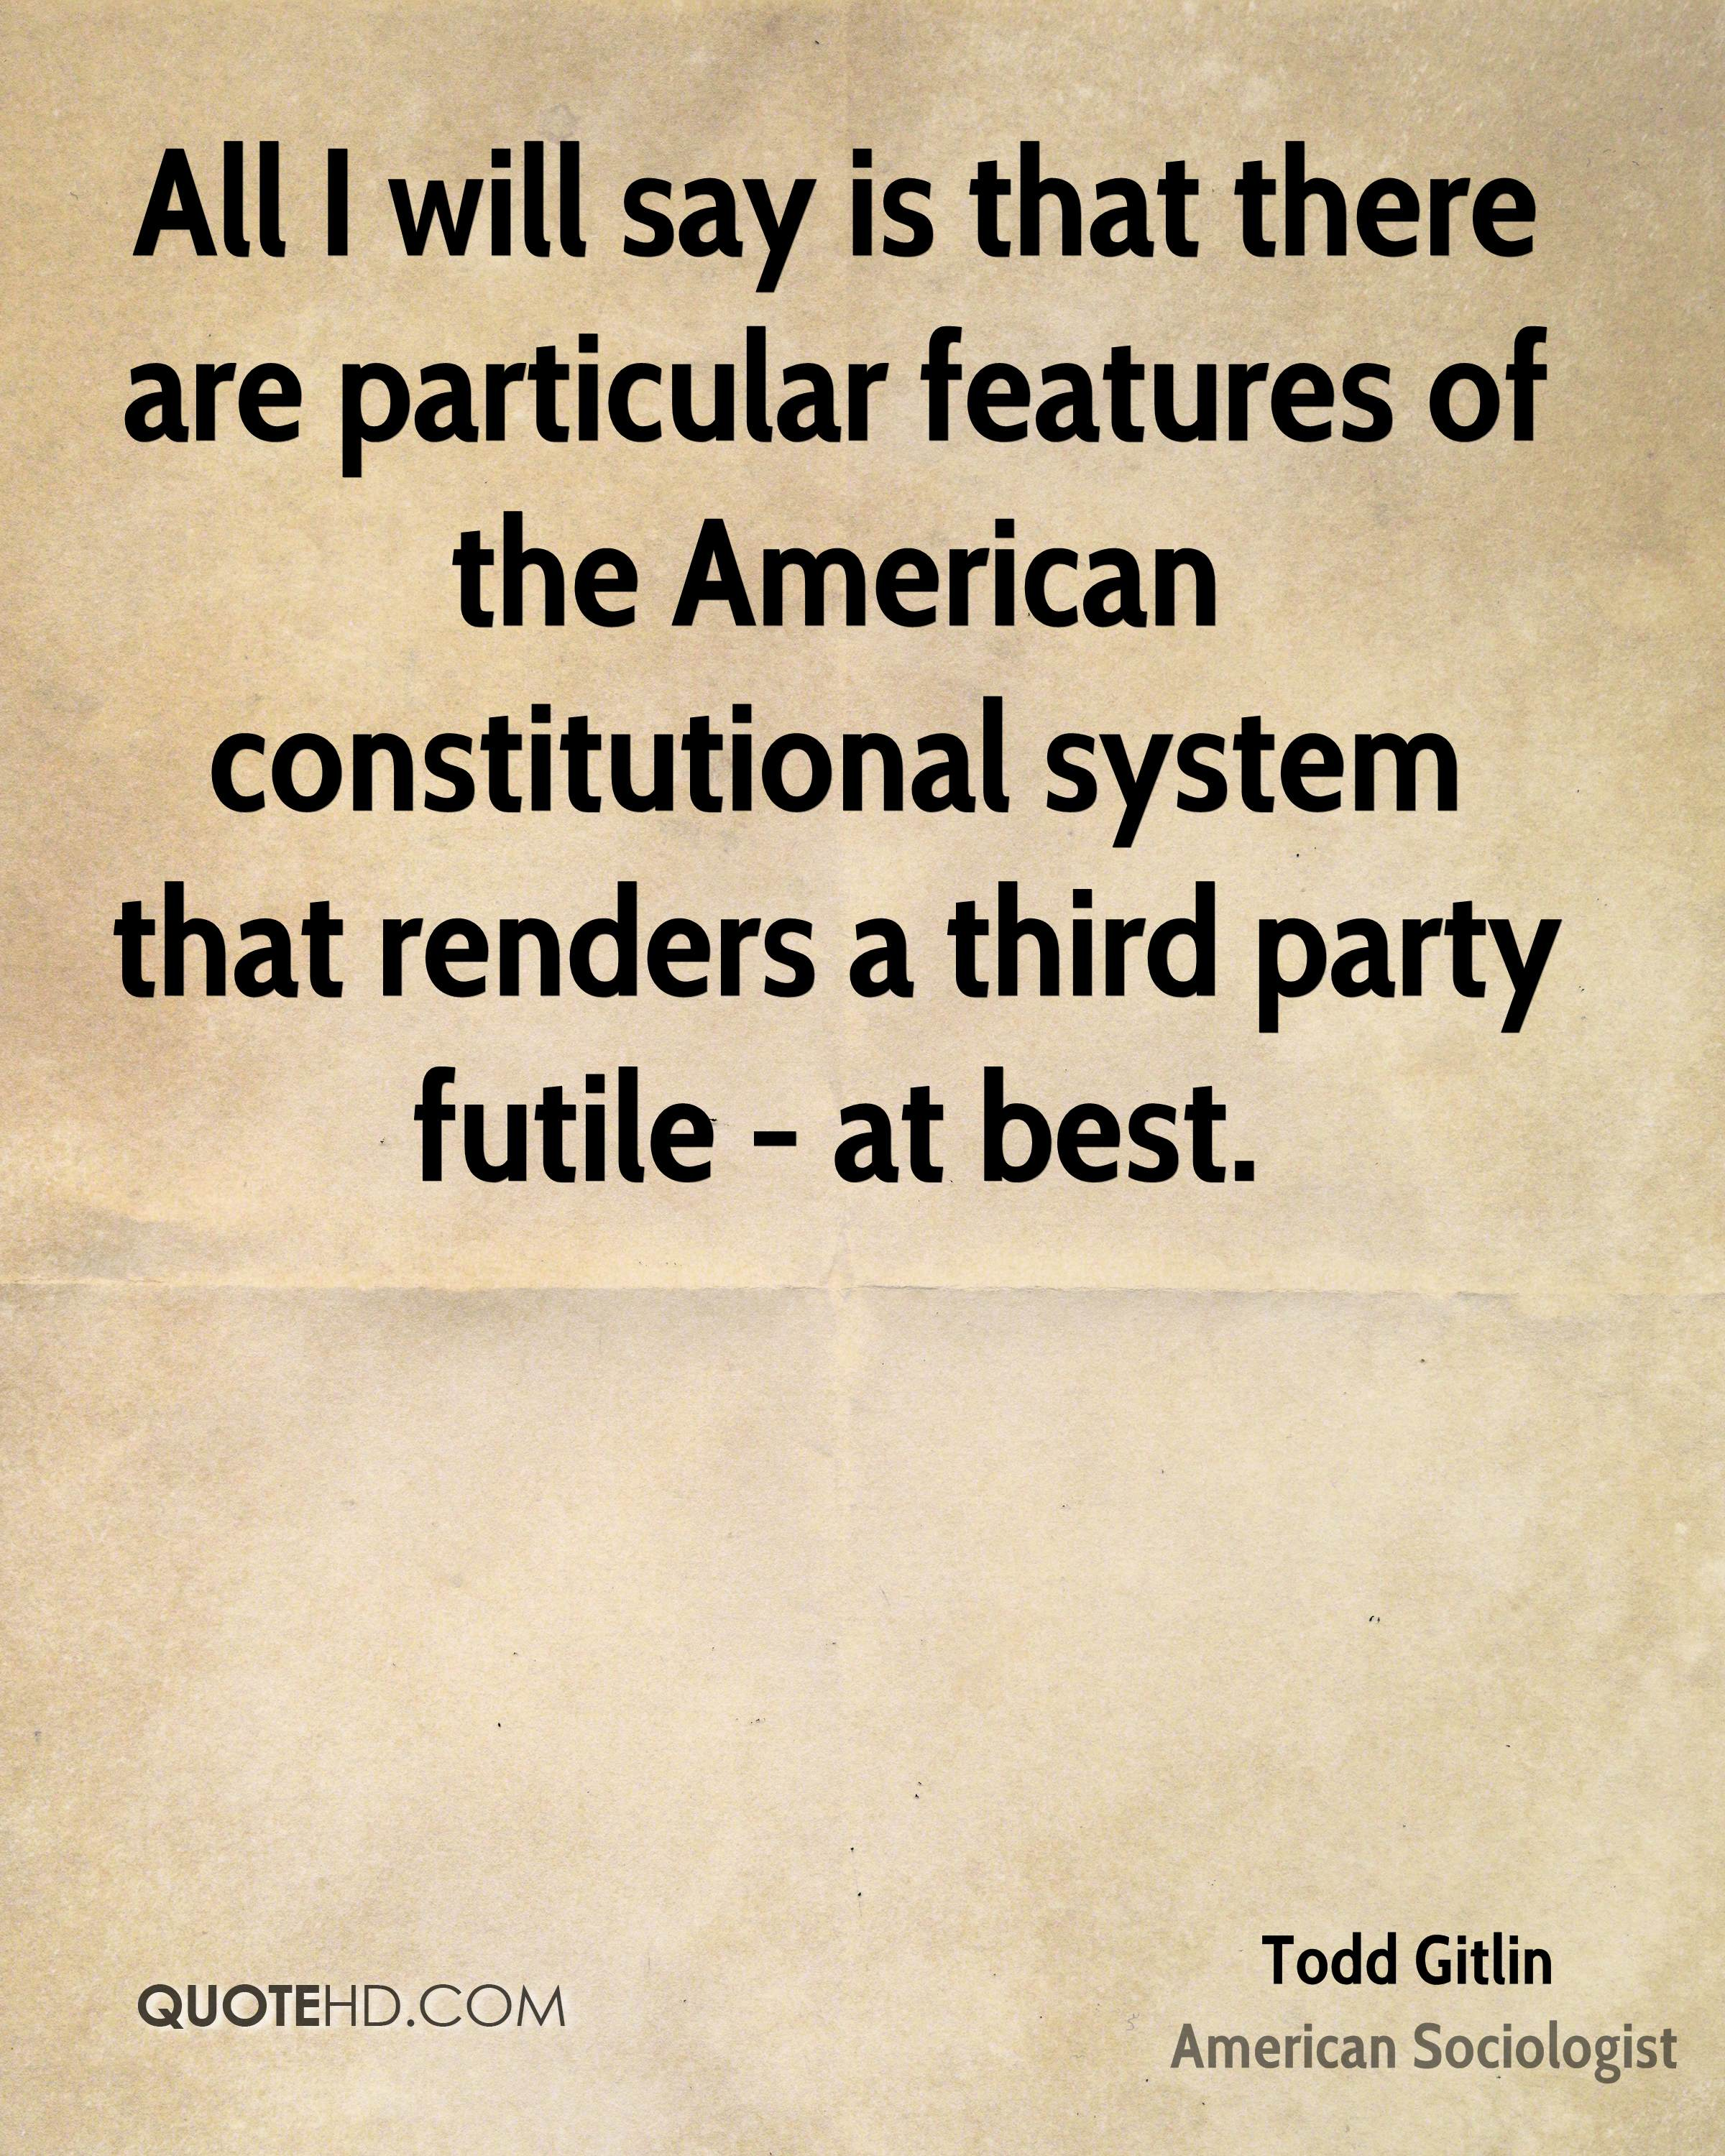 All I will say is that there are particular features of the American constitutional system that renders a third party futile - at best.